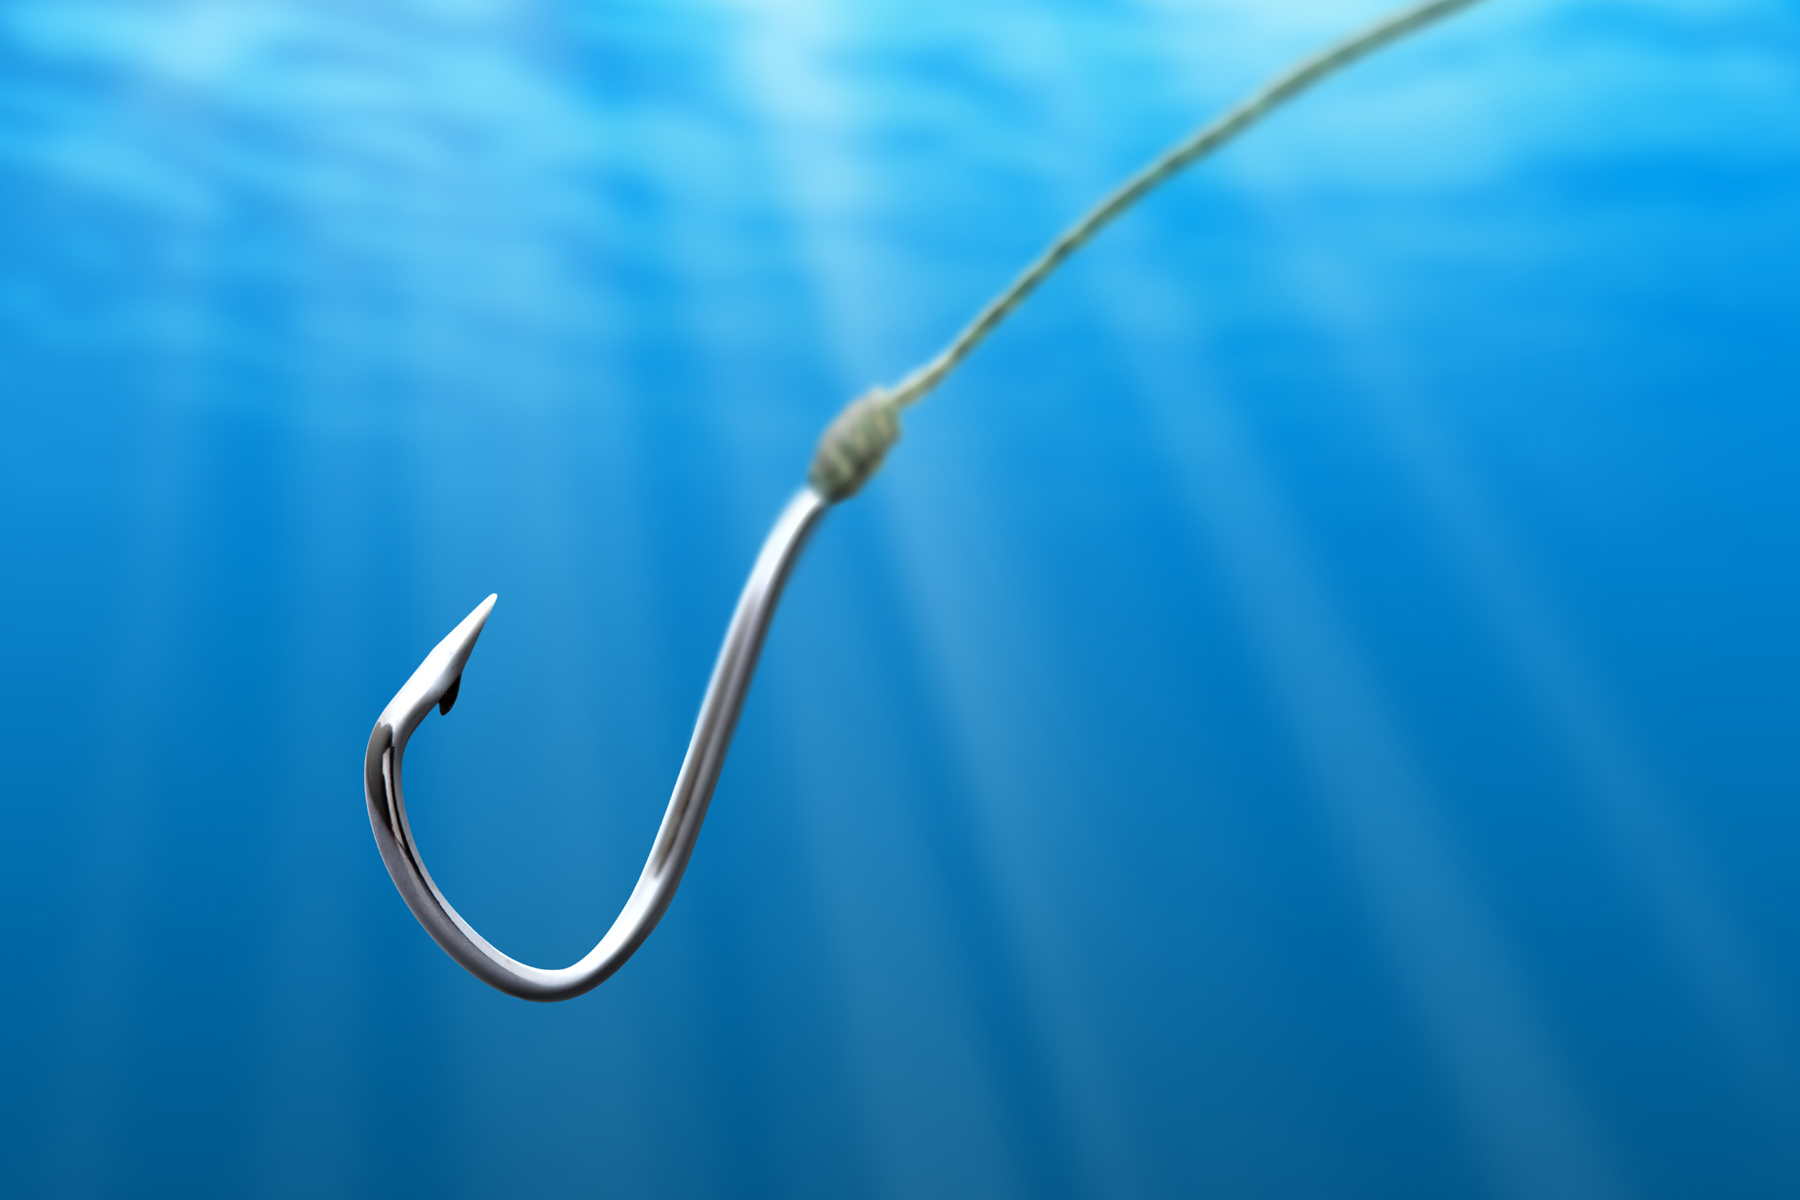 Into into the water of the stainless steel hooks 52560